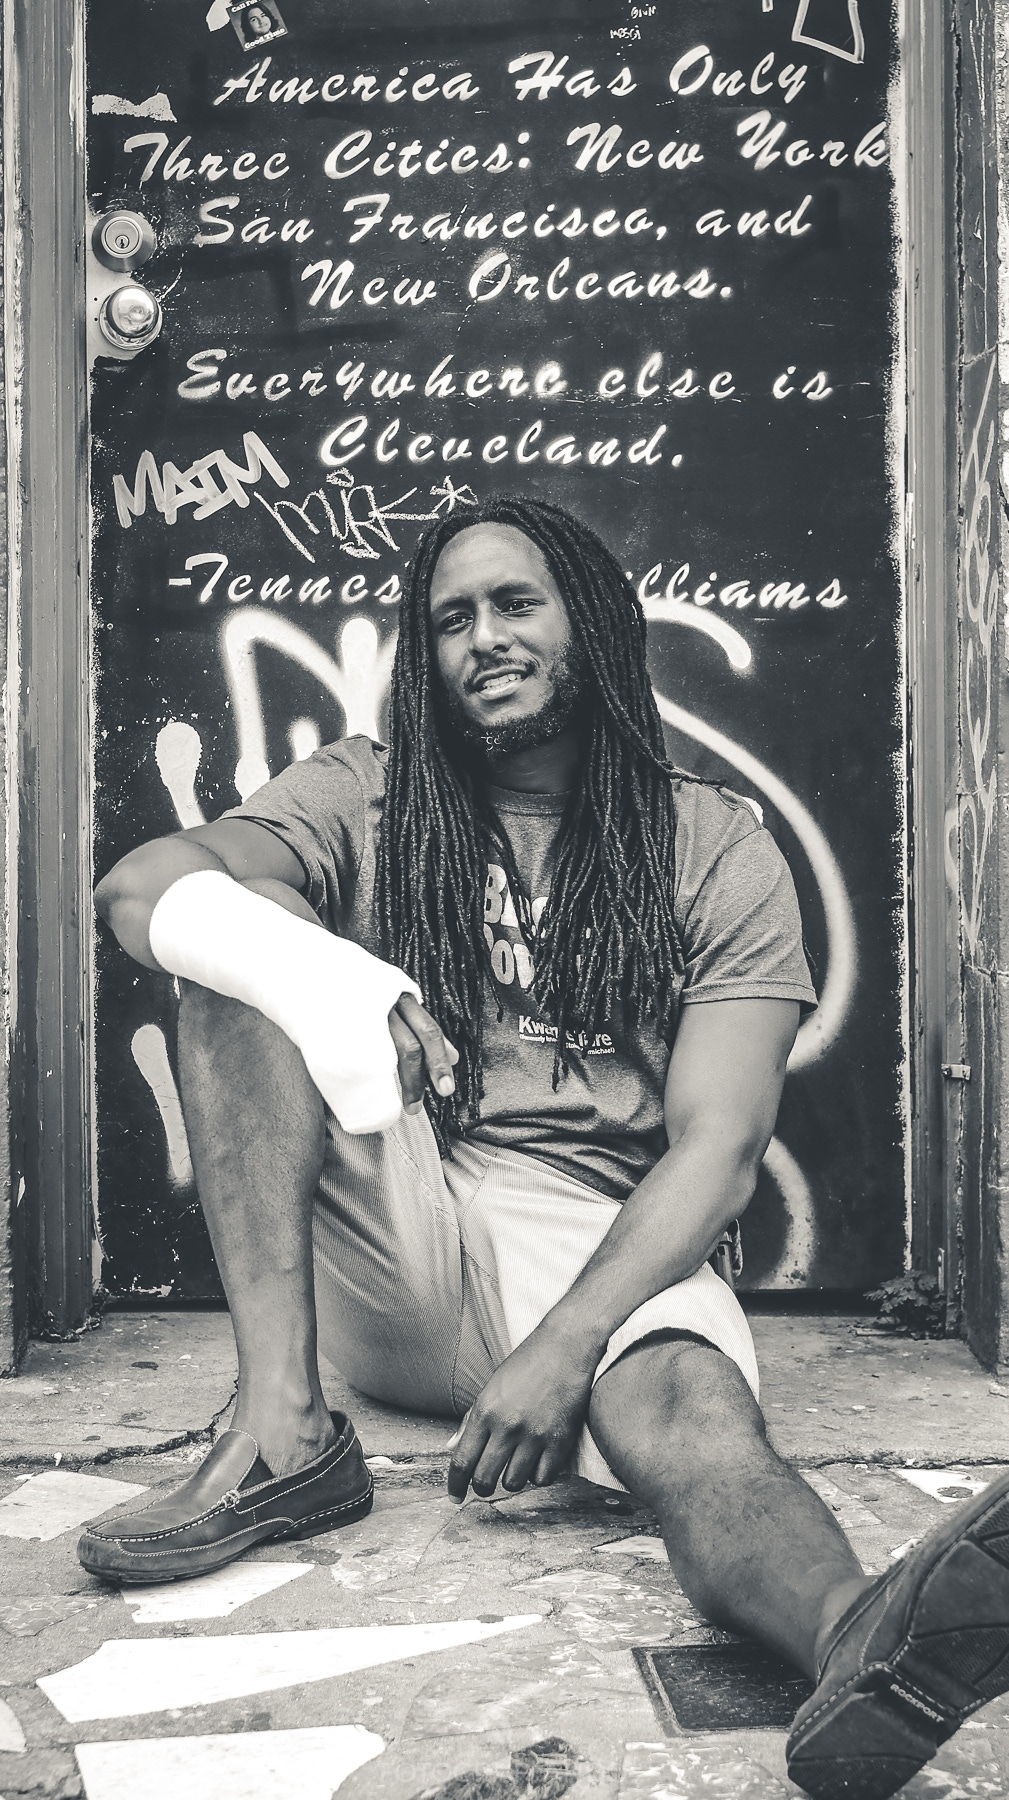 A black-and-white photo of a Black man with long dreadlocks sitting and leaning against a doorway painted with a Tennessee Williams quote in cursive. The man is wearing a T-shirt, light shorts, boat shoes, and has a cast on his right arm.